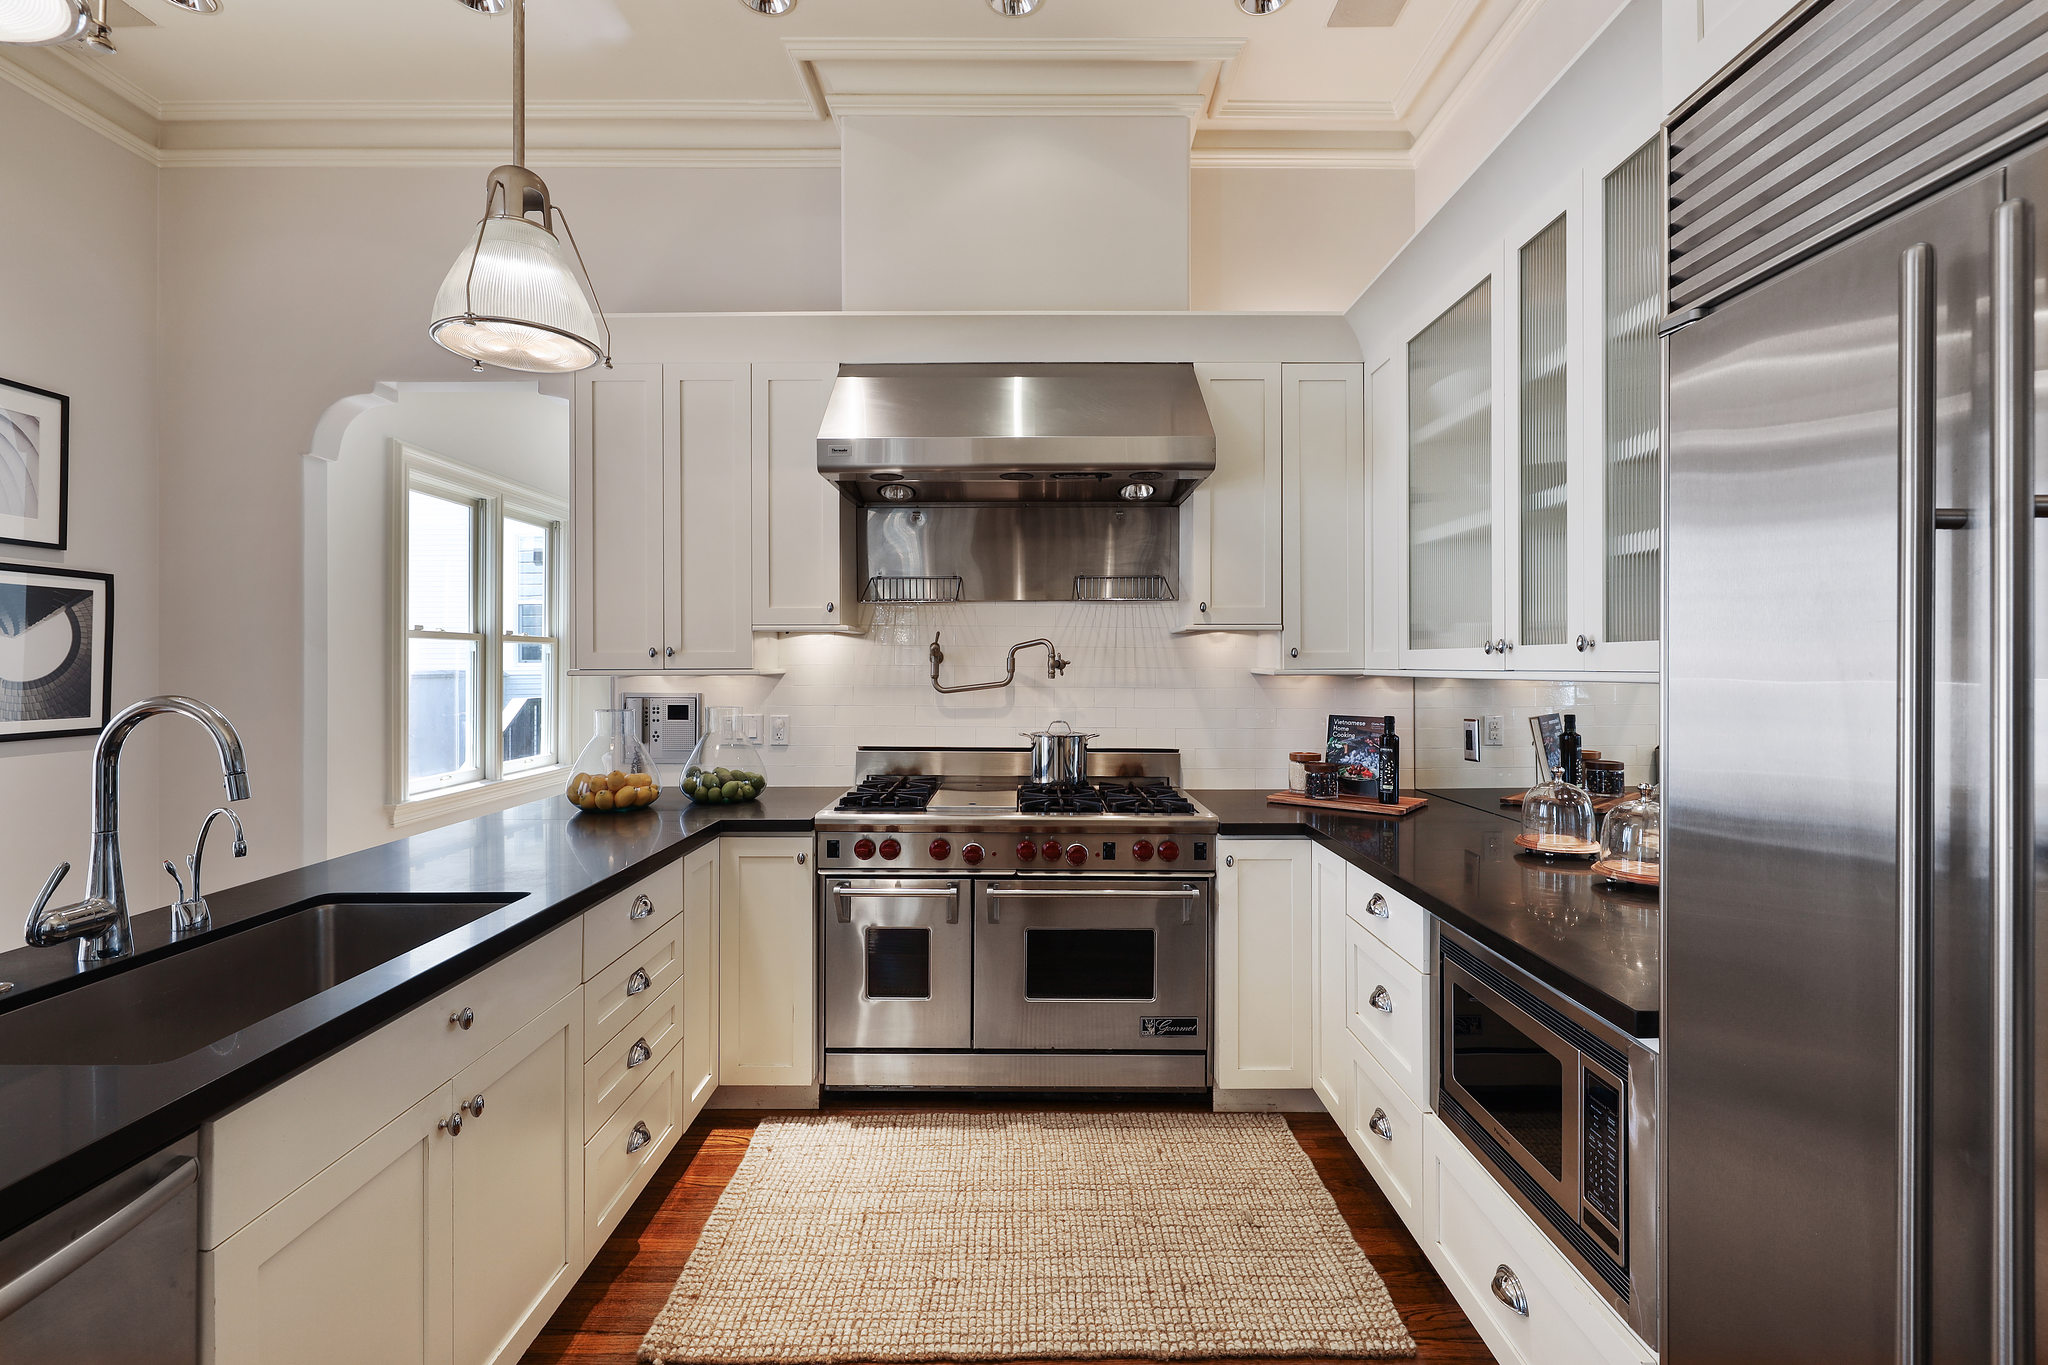 A very modern kitchen with storage, counter space, and appliances for the modern chef.